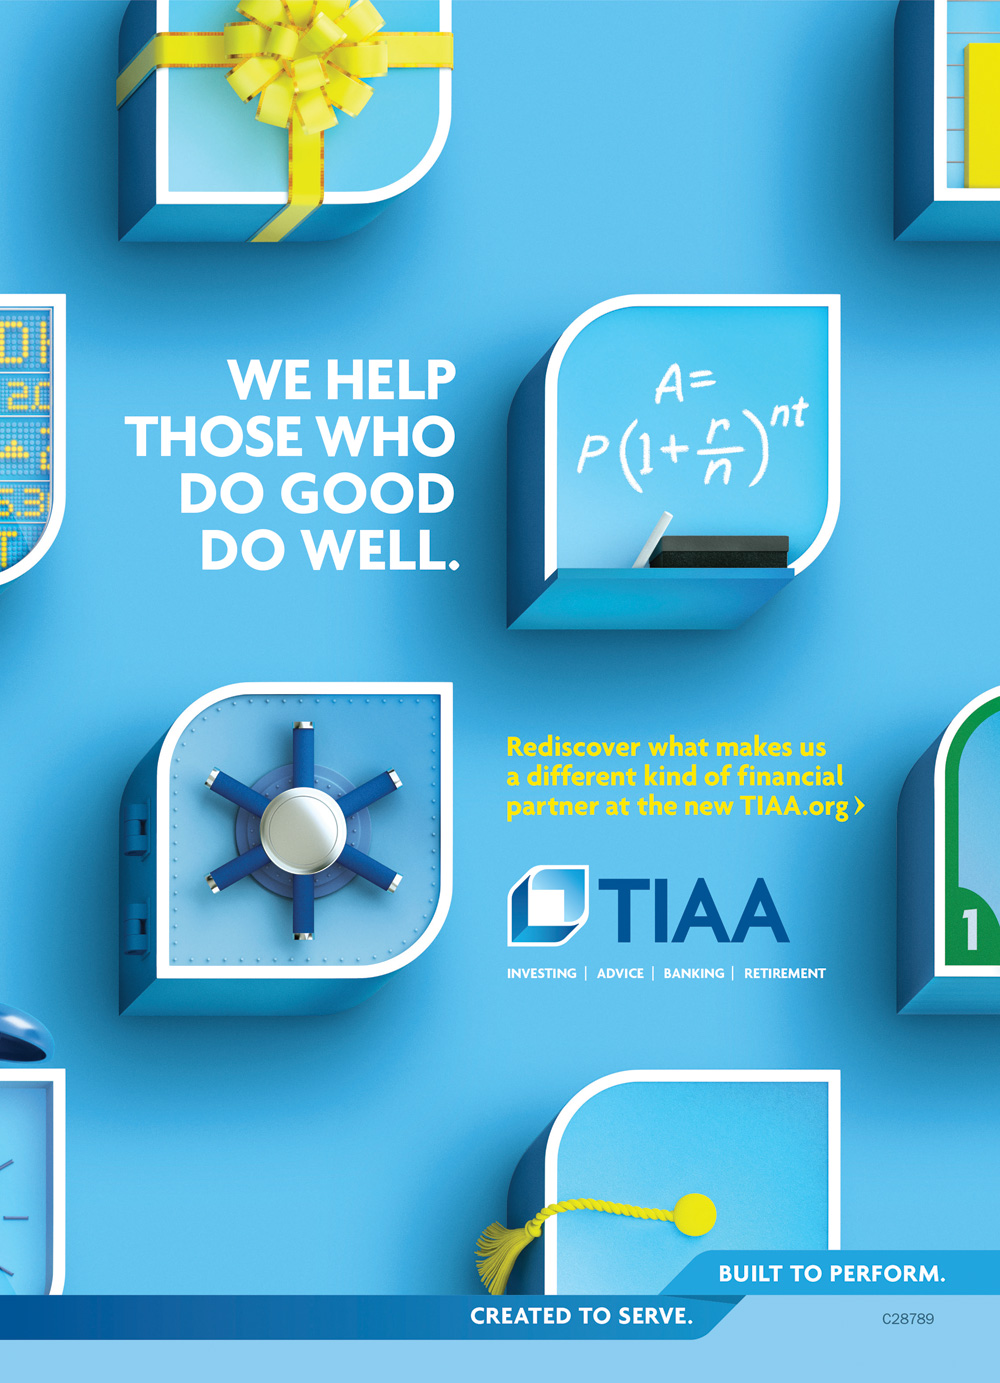 Tiaa Cref Life Insurance Quote Brand New New Name And Logo For Tiaa